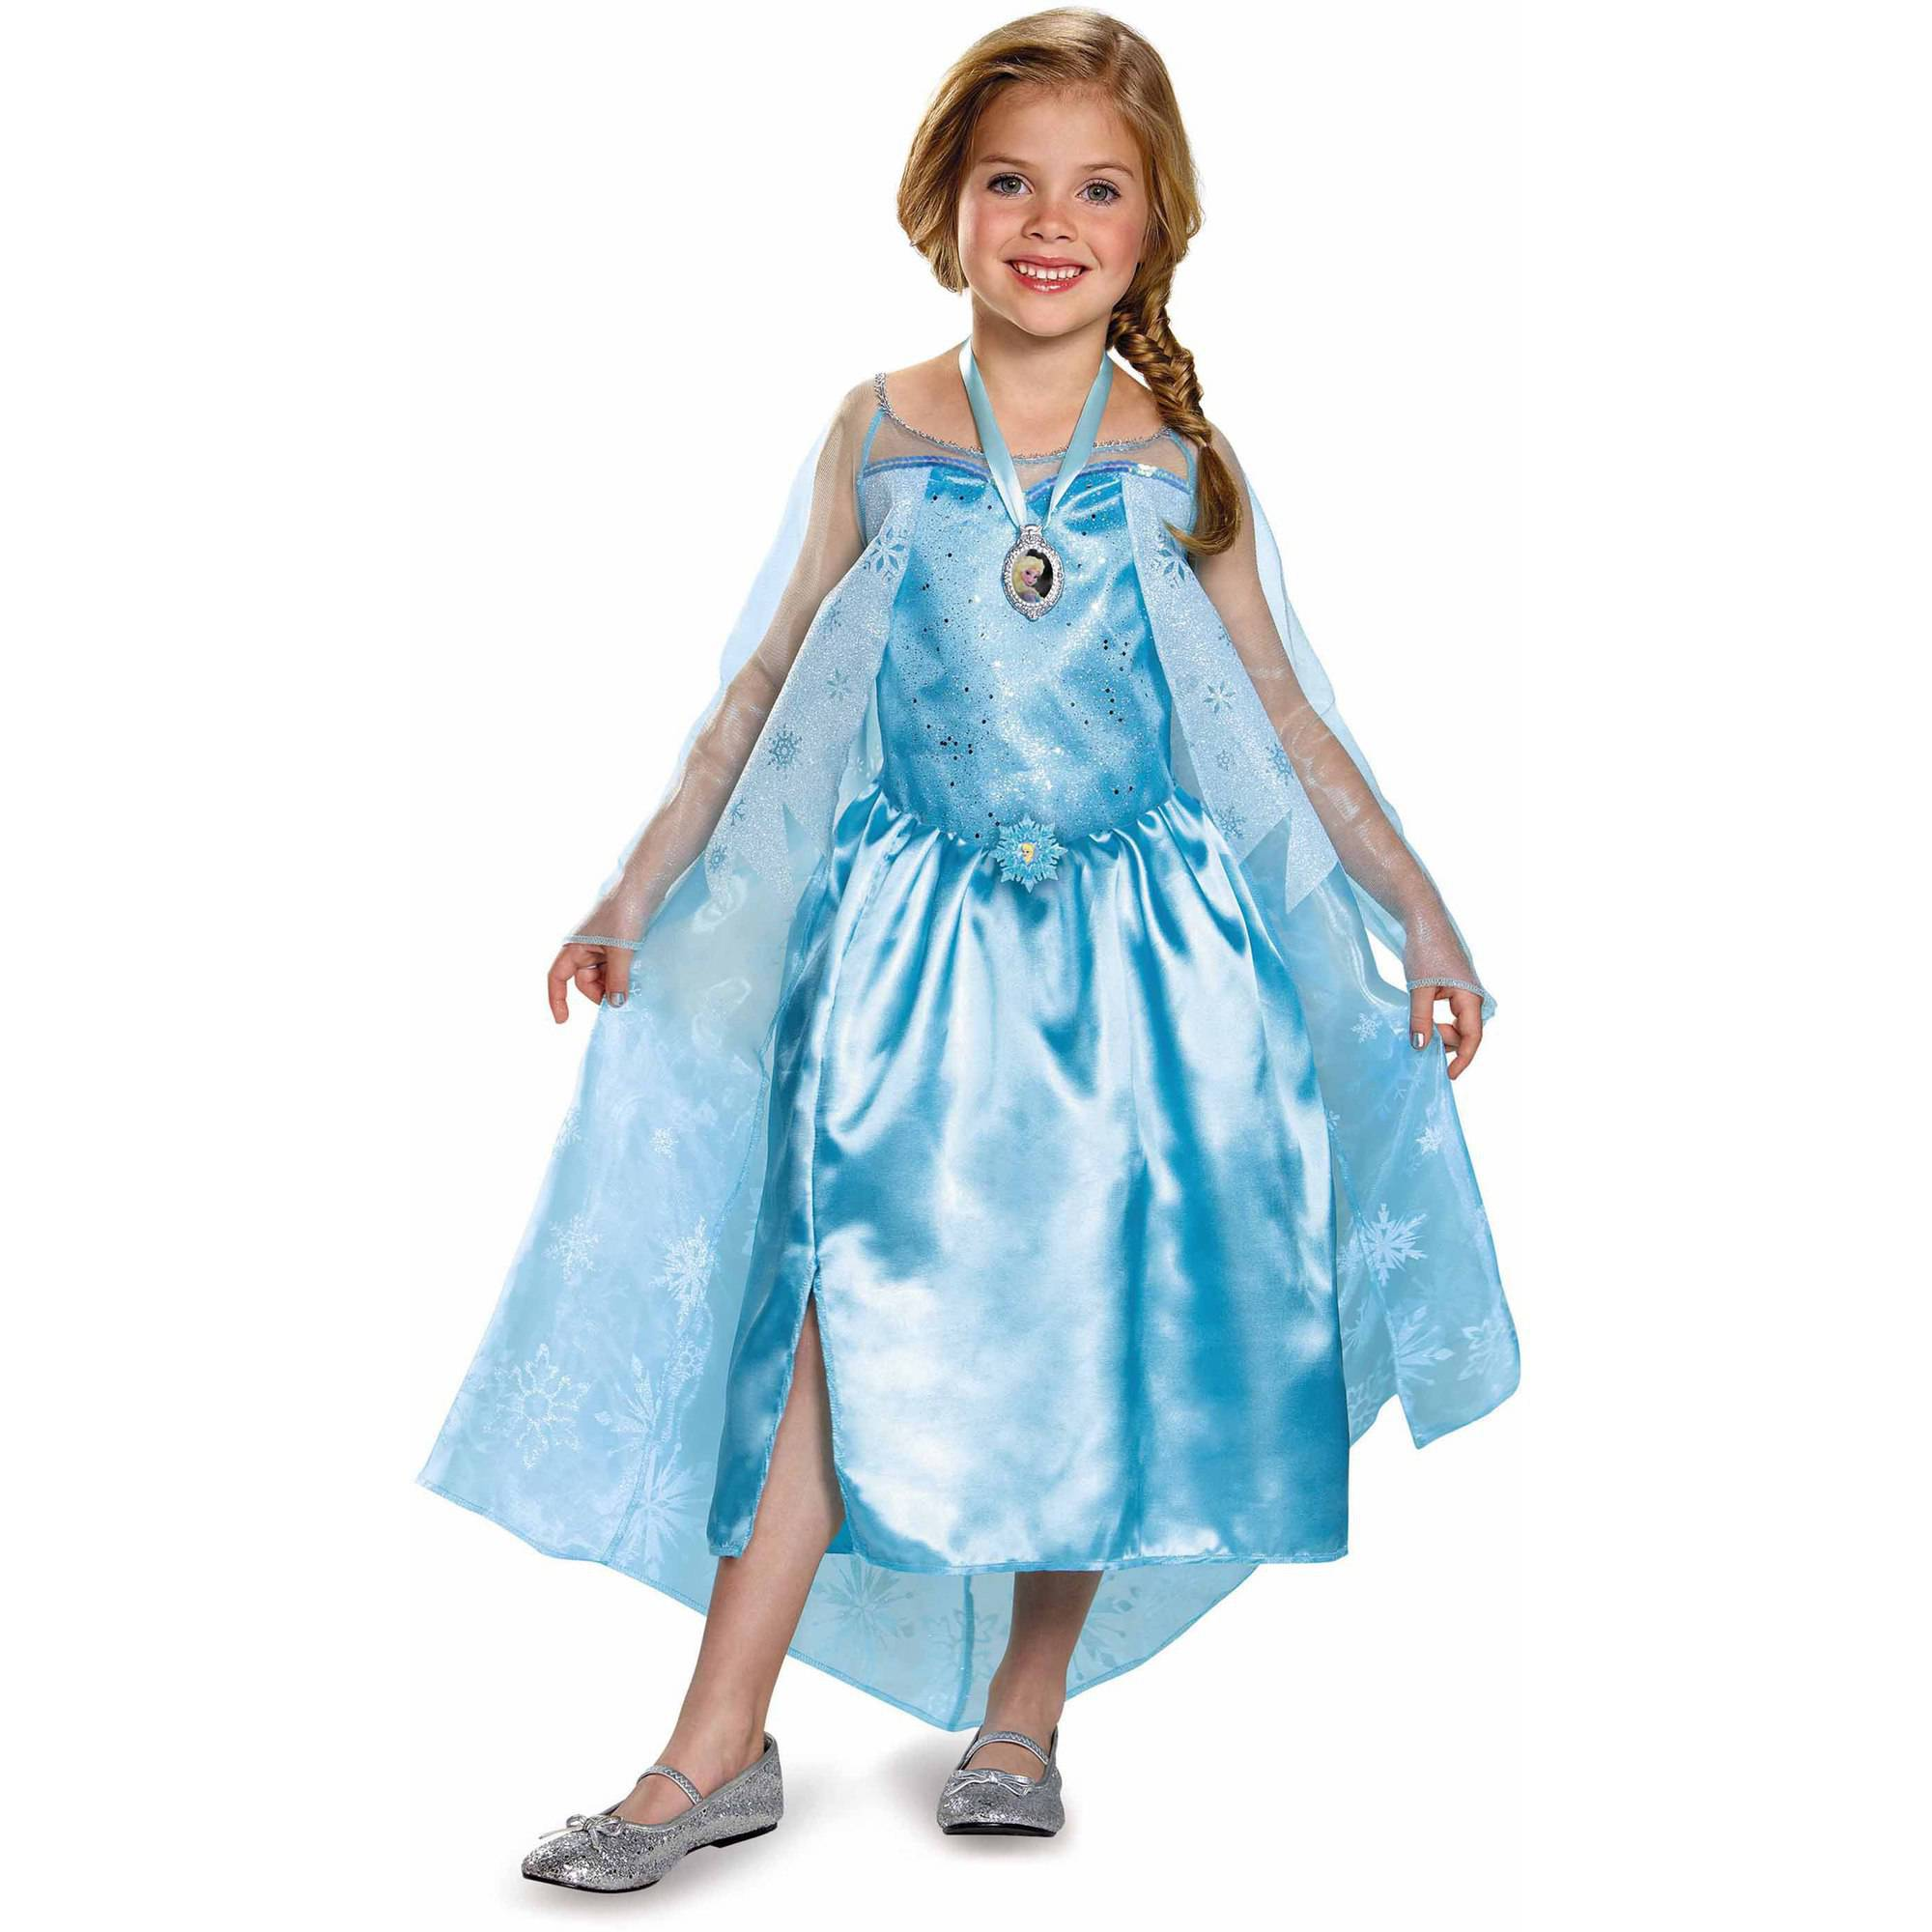 Frozen Elsa Classic Child Halloween Dress Up / Role Play Costume with Locket - Walmart.com  sc 1 st  Walmart & Frozen Elsa Classic Child Halloween Dress Up / Role Play Costume ...